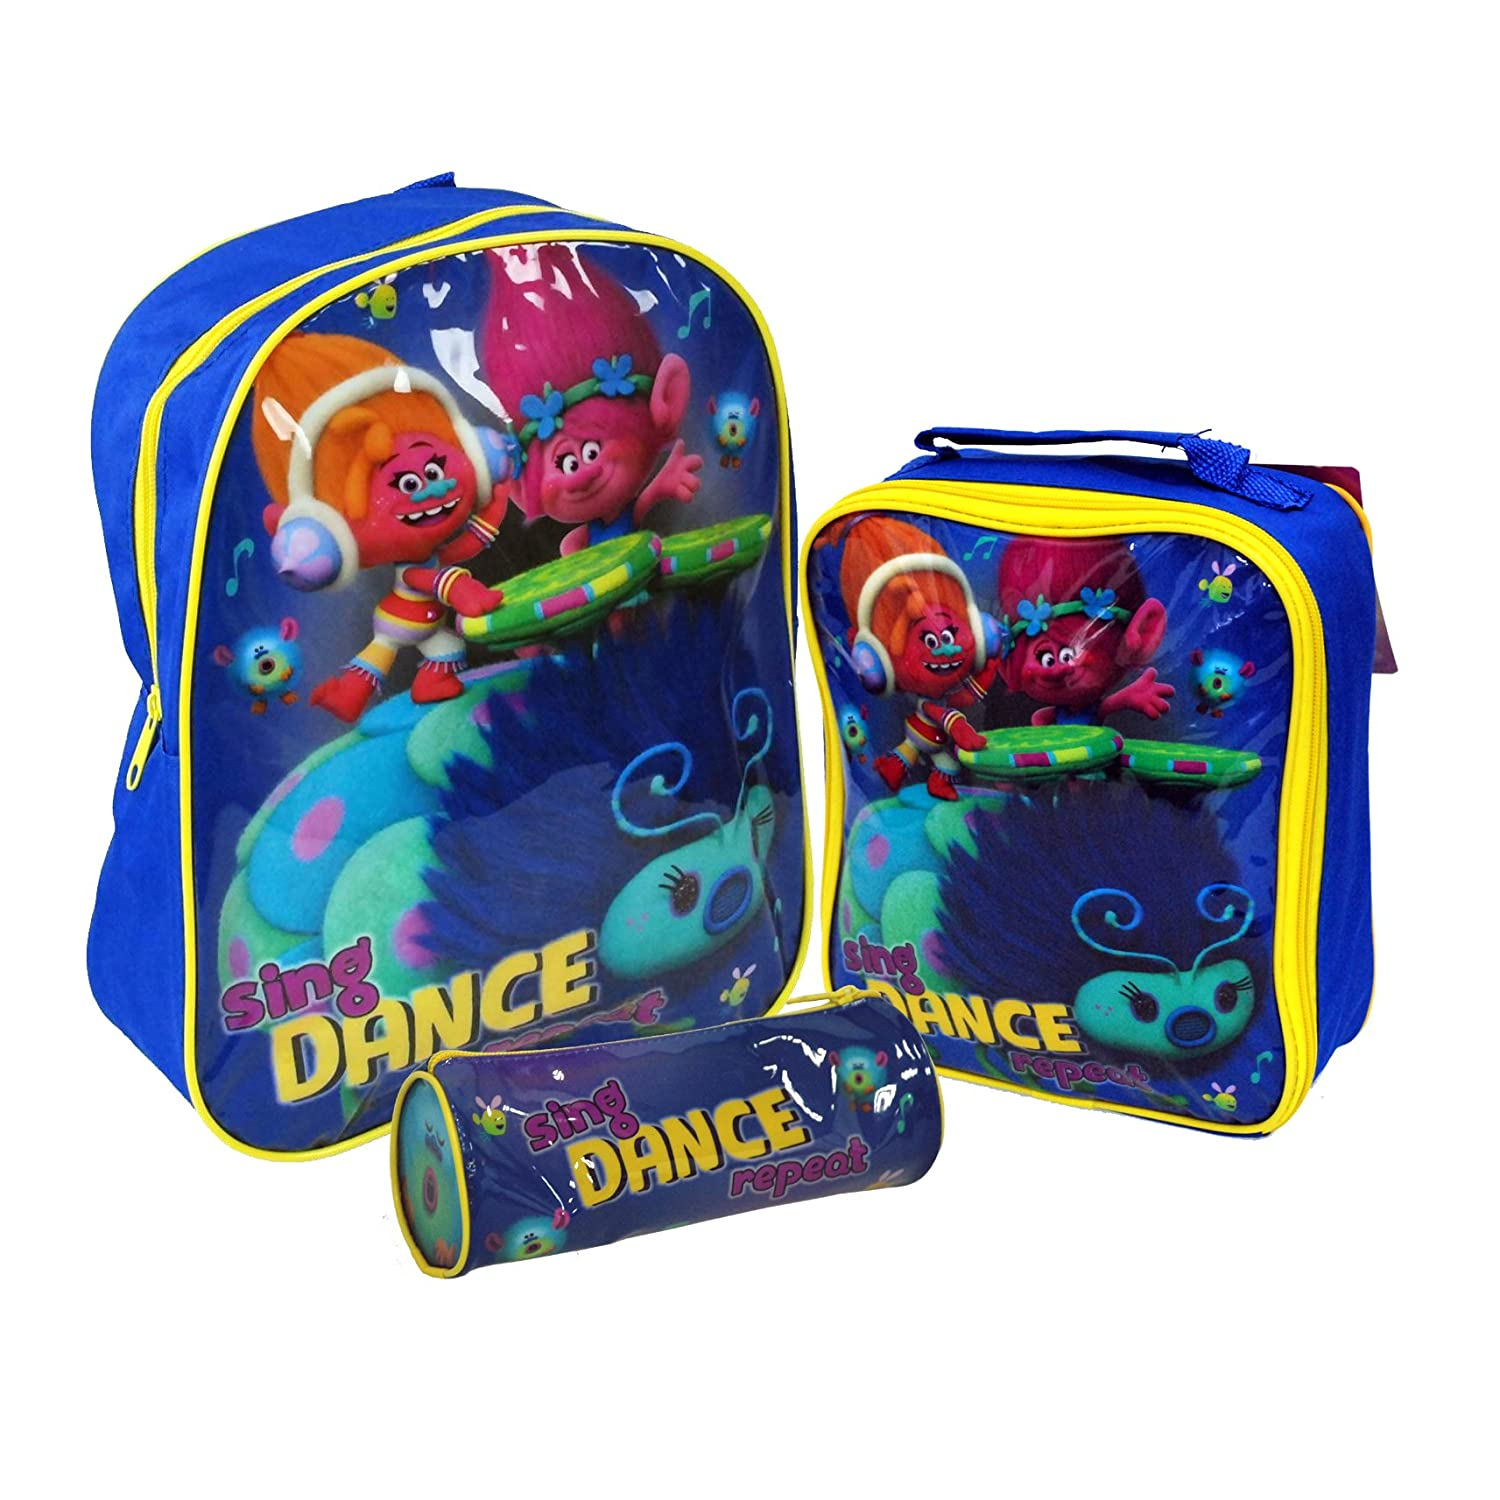 DreamWorks® Trolls 'Sing, Dance, Repeat' Official Kids Children School Travel Backpack, Lunch Bag & Pencil Case Set DreamWorks® Trolls 'Sing Universal® Minions